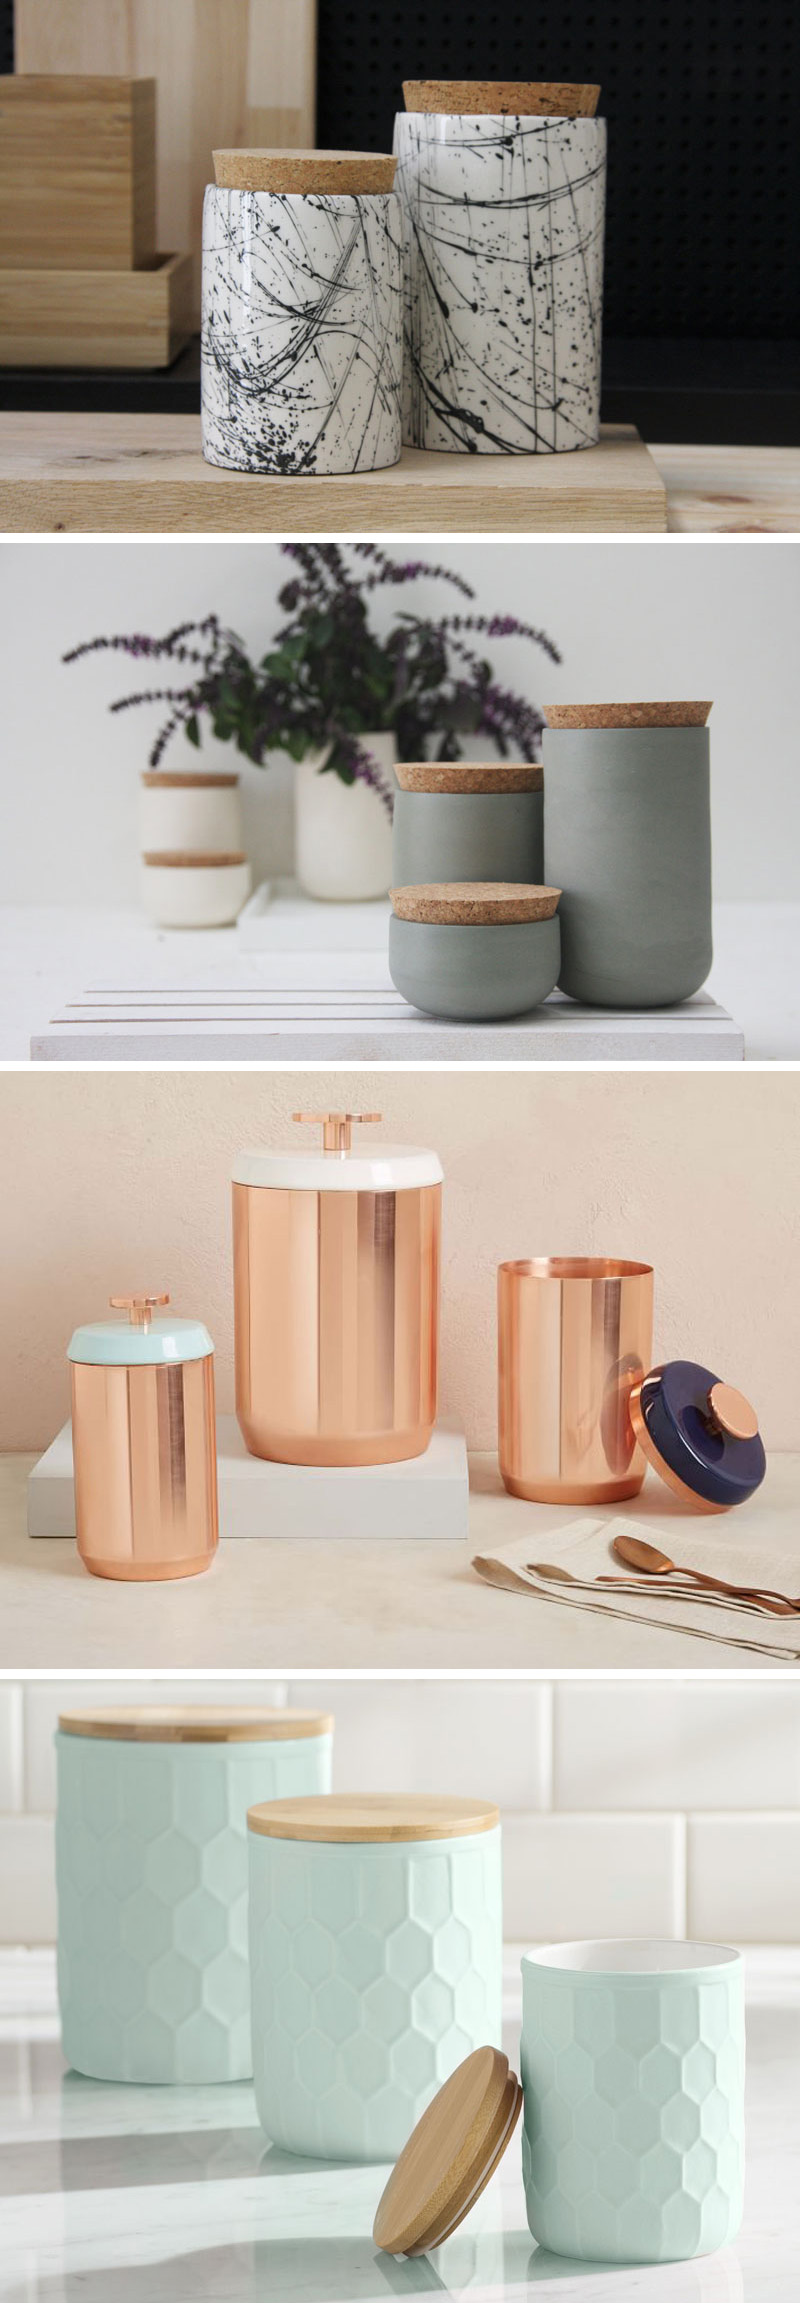 These modern jars and canisters are perfect for sprucing up any pantry or countertop.